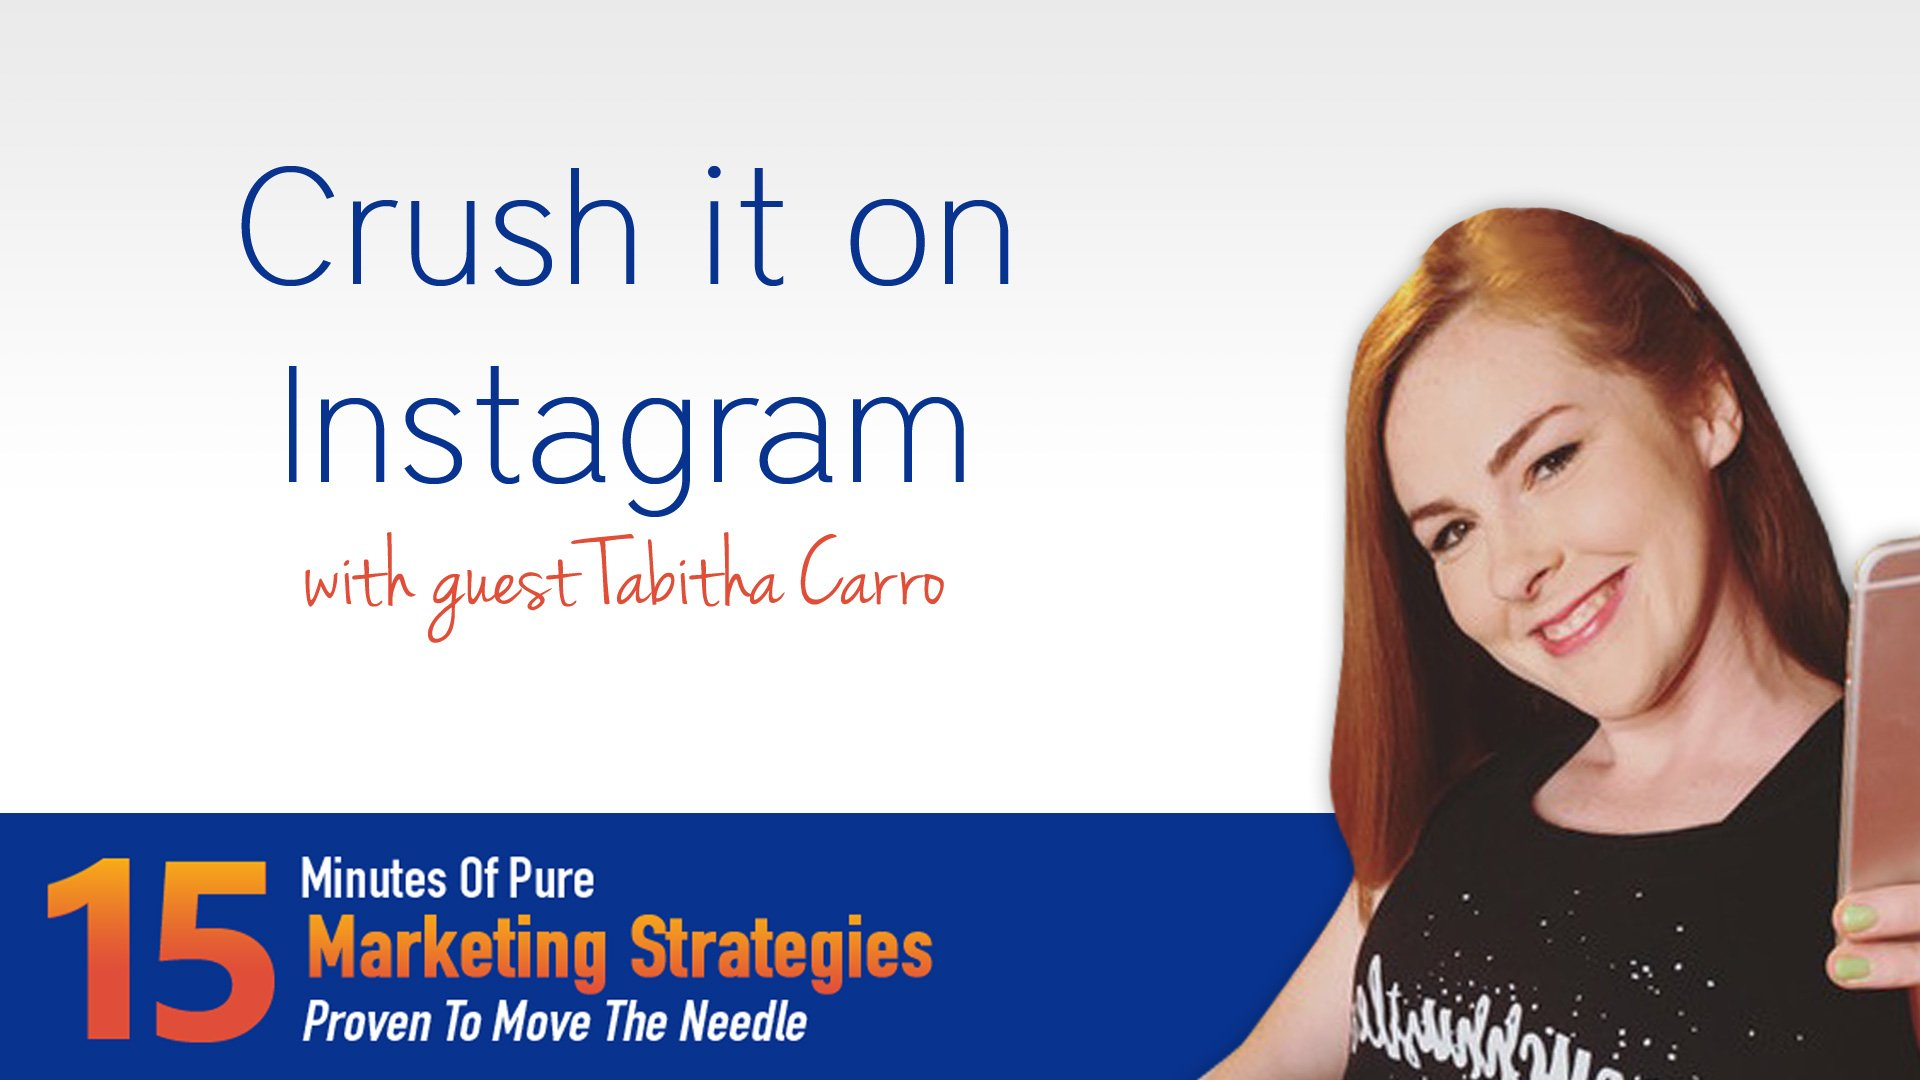 Crush it on Instagram with Tabitha Carro